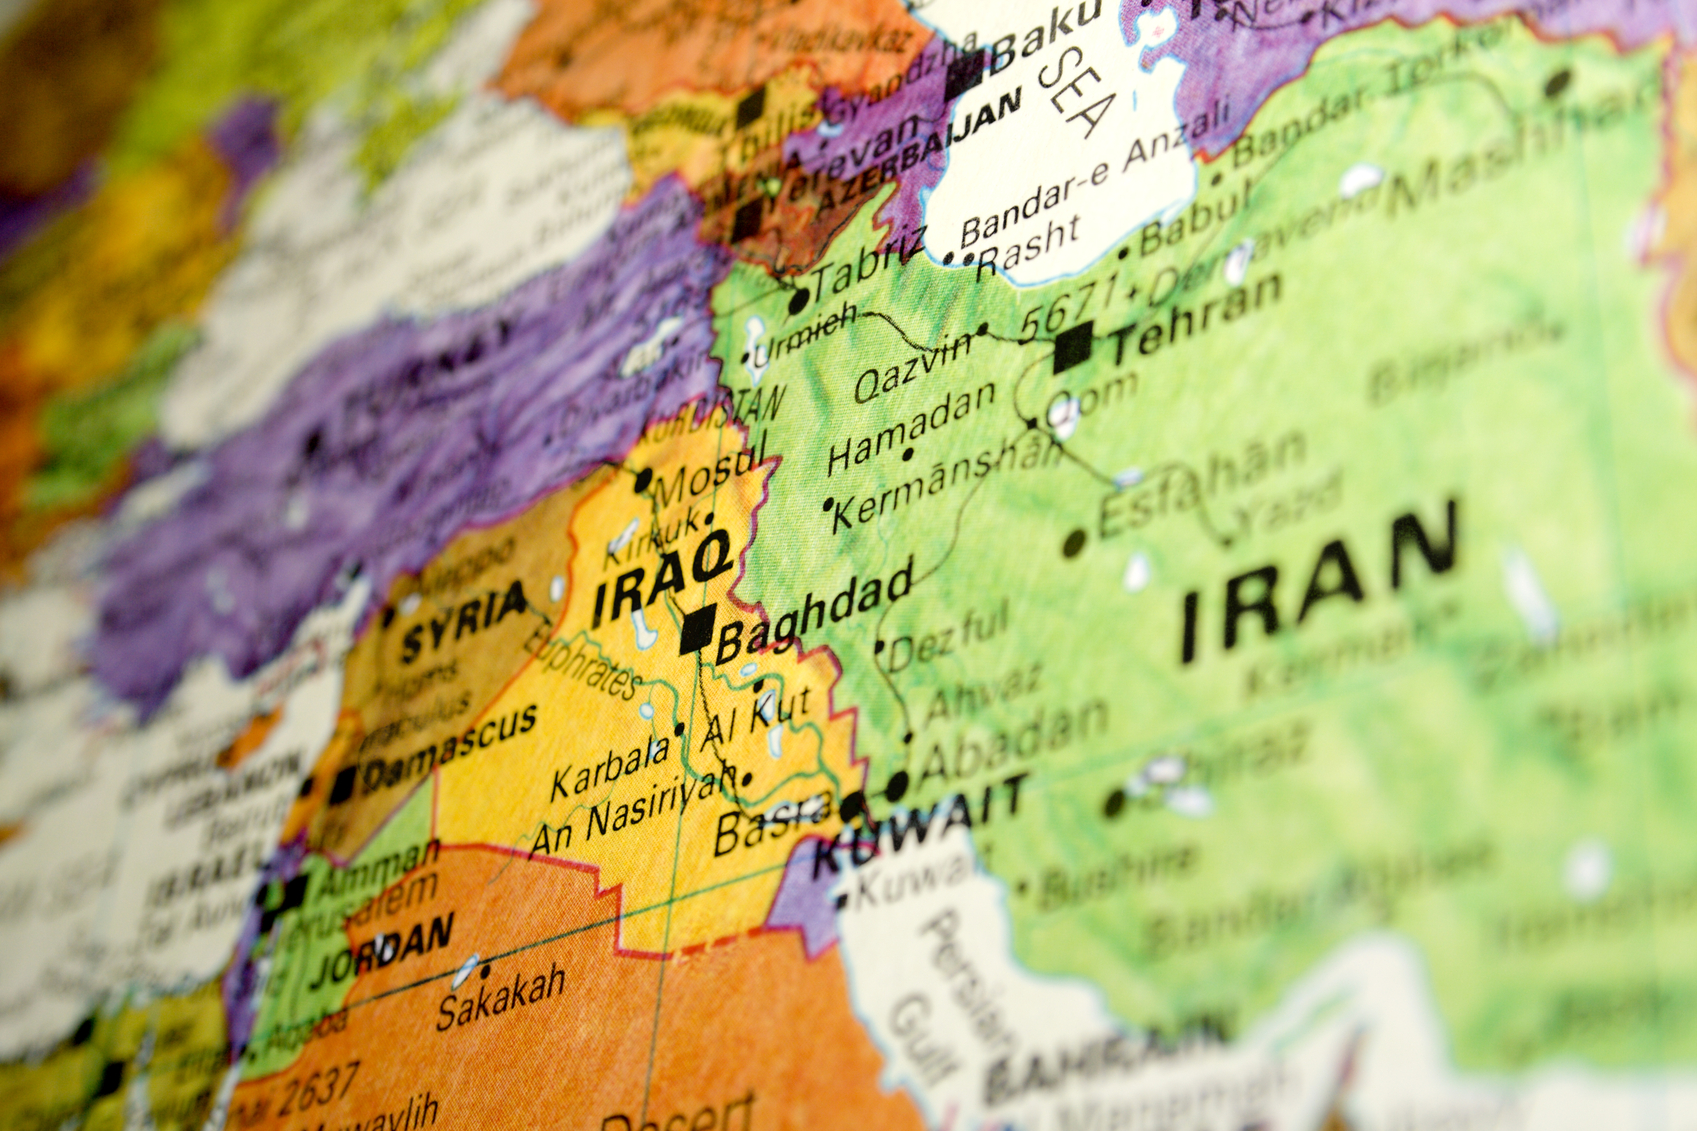 Chafer APT Hits Middle East Governments With Cyber-Espionage Attacks